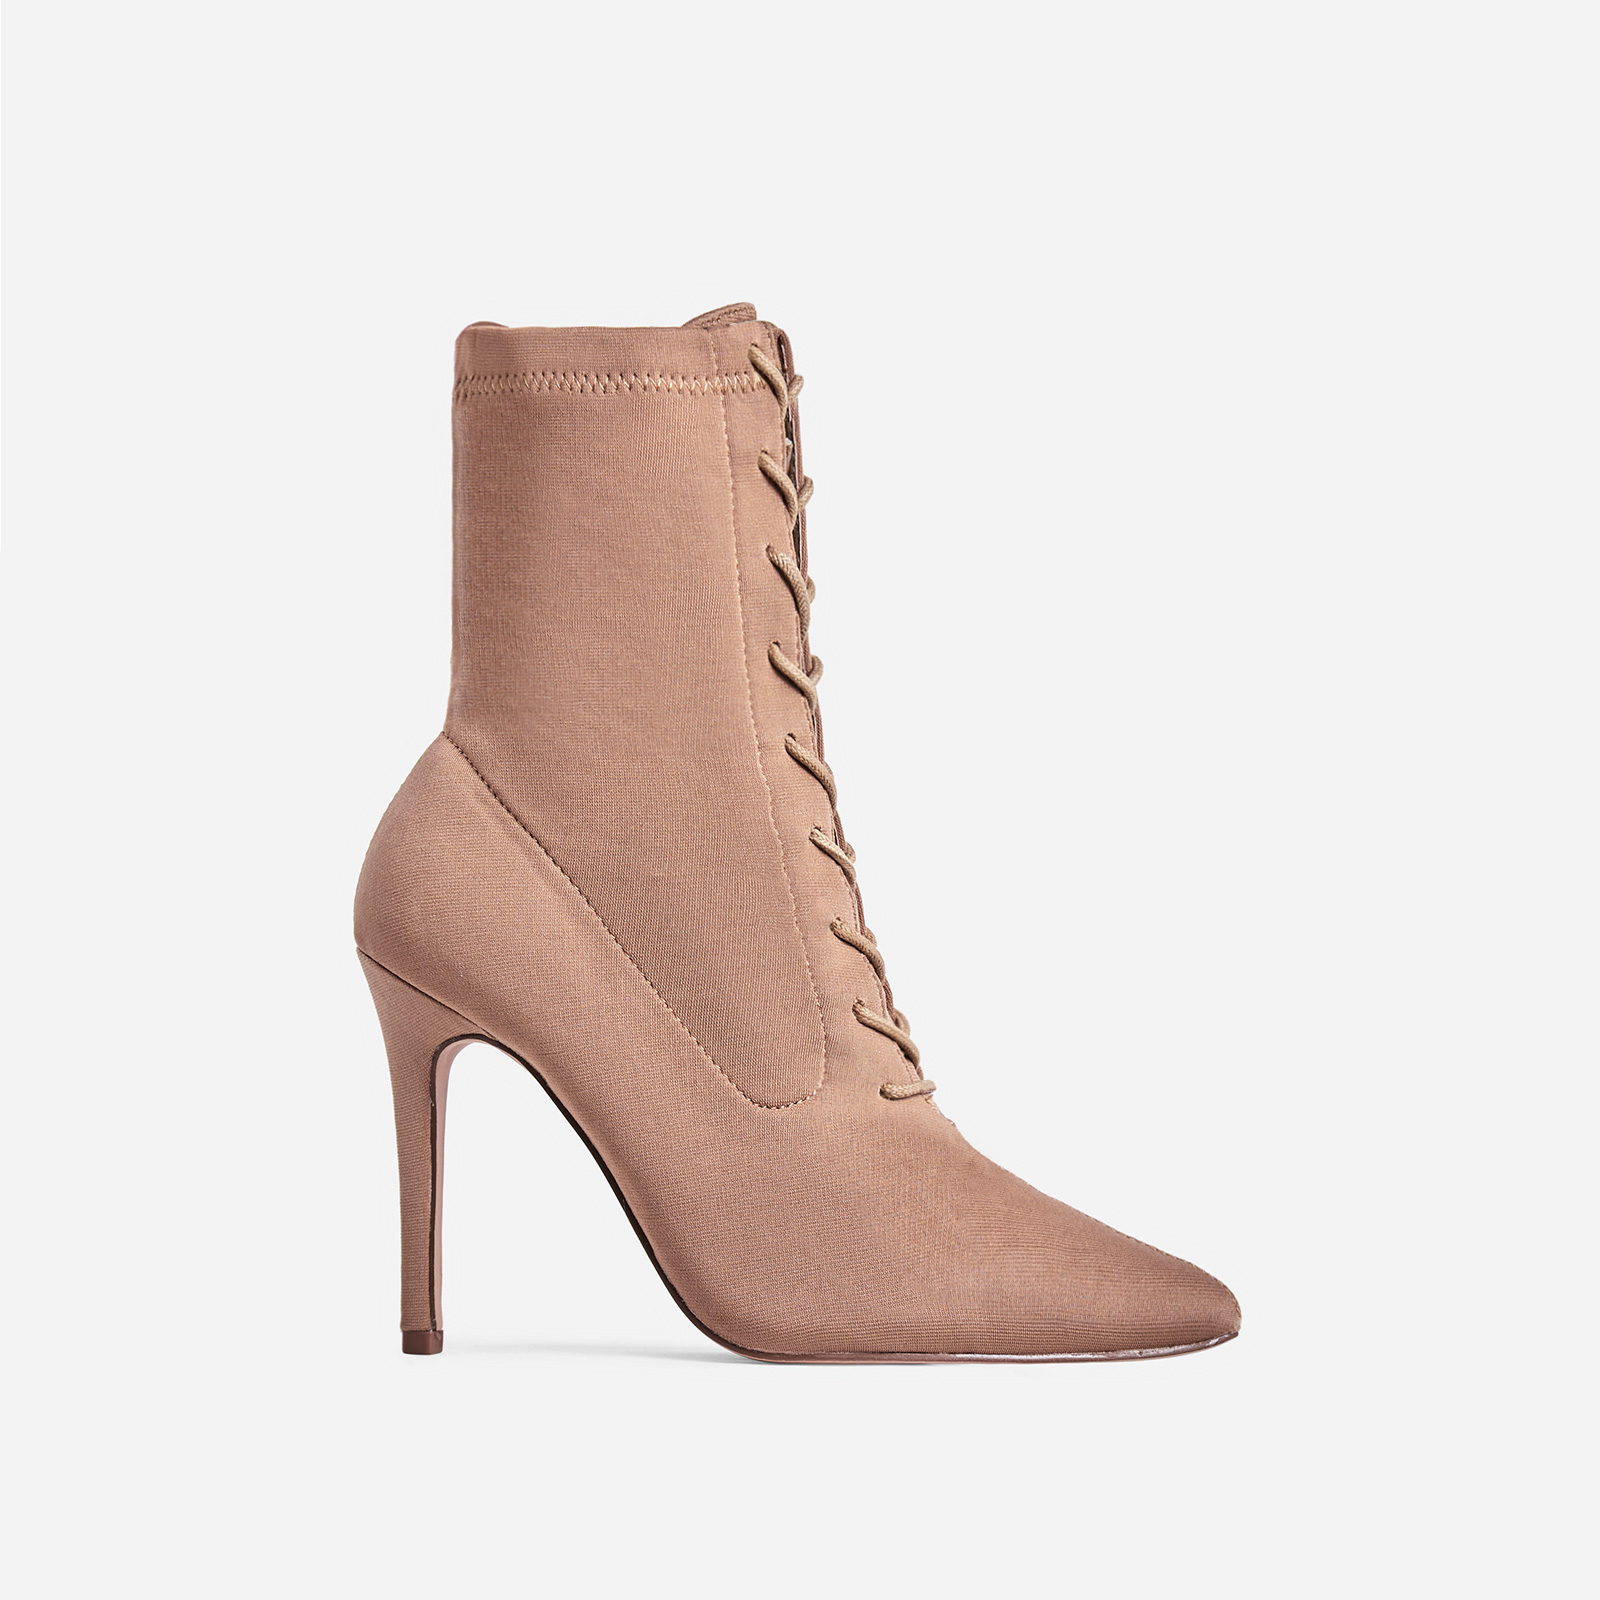 Cosmic Lace Up Ankle Boot In Nude Knit Image 1